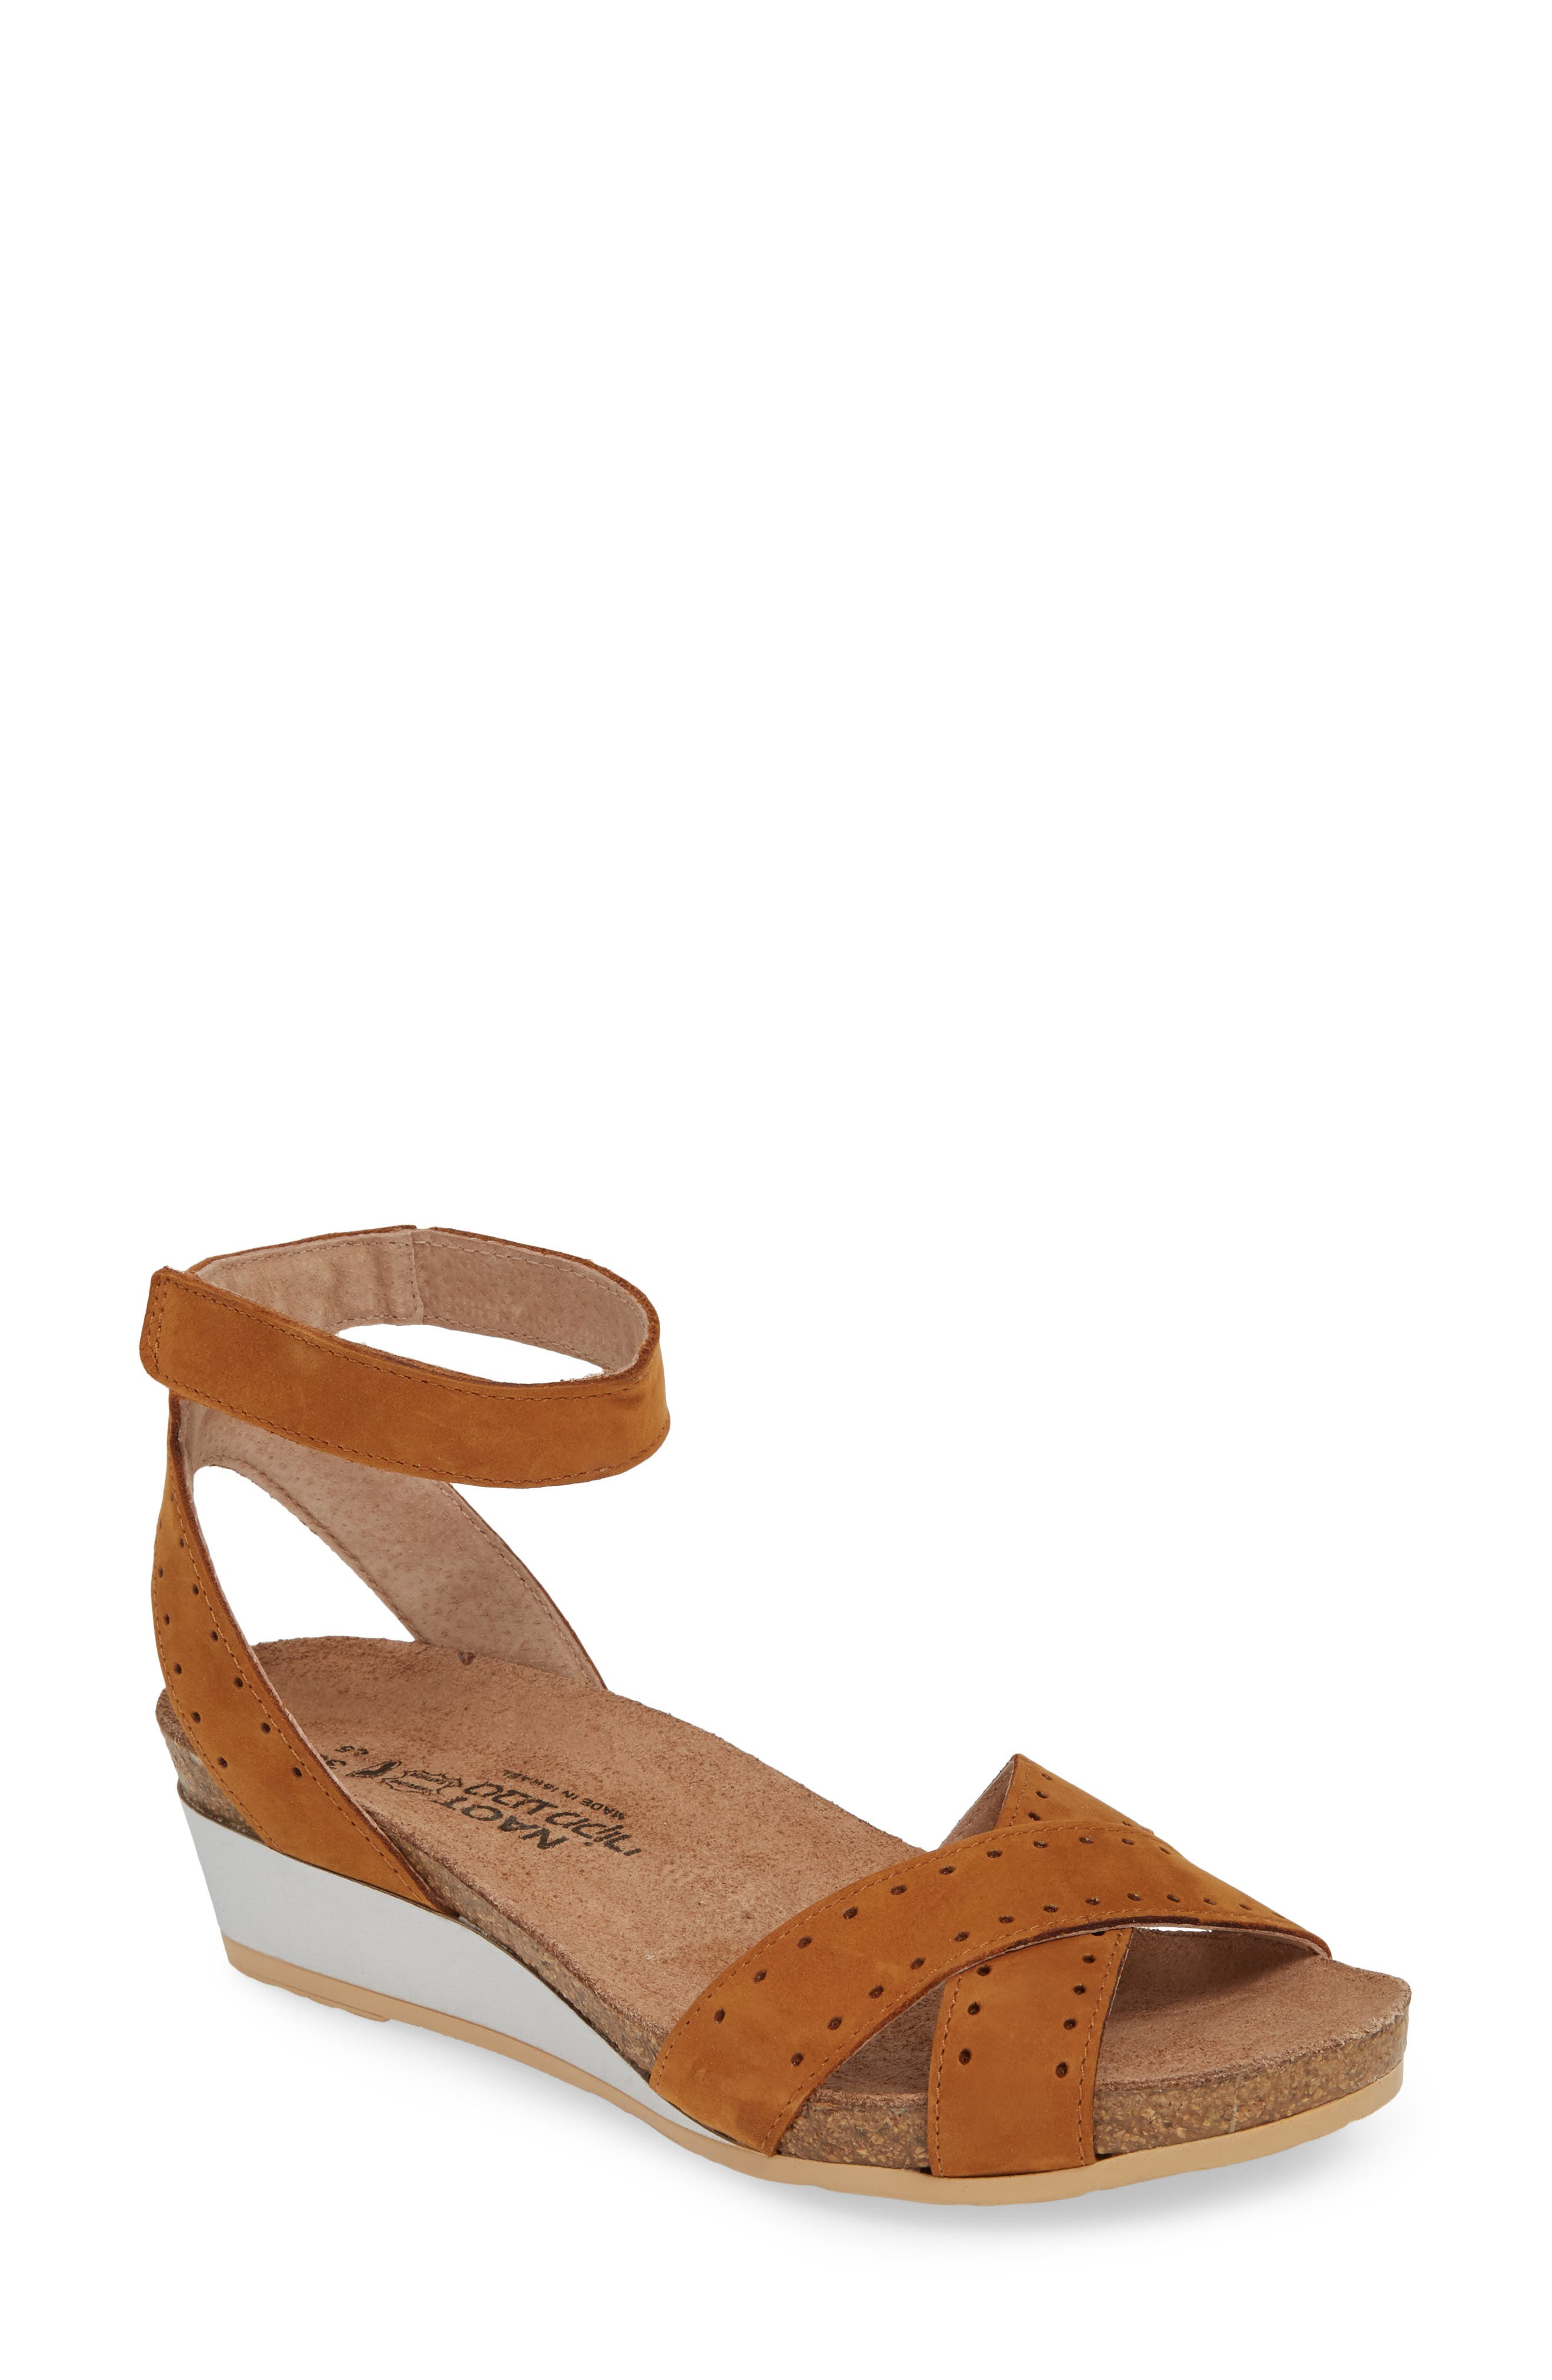 A cork and memory foam footbed adds lightweight comfort to this minimalist ankle-strap sandal. Style Name: Naot Wand Wedge Sandal (Women). Style Number: 5807753. Available in stores.